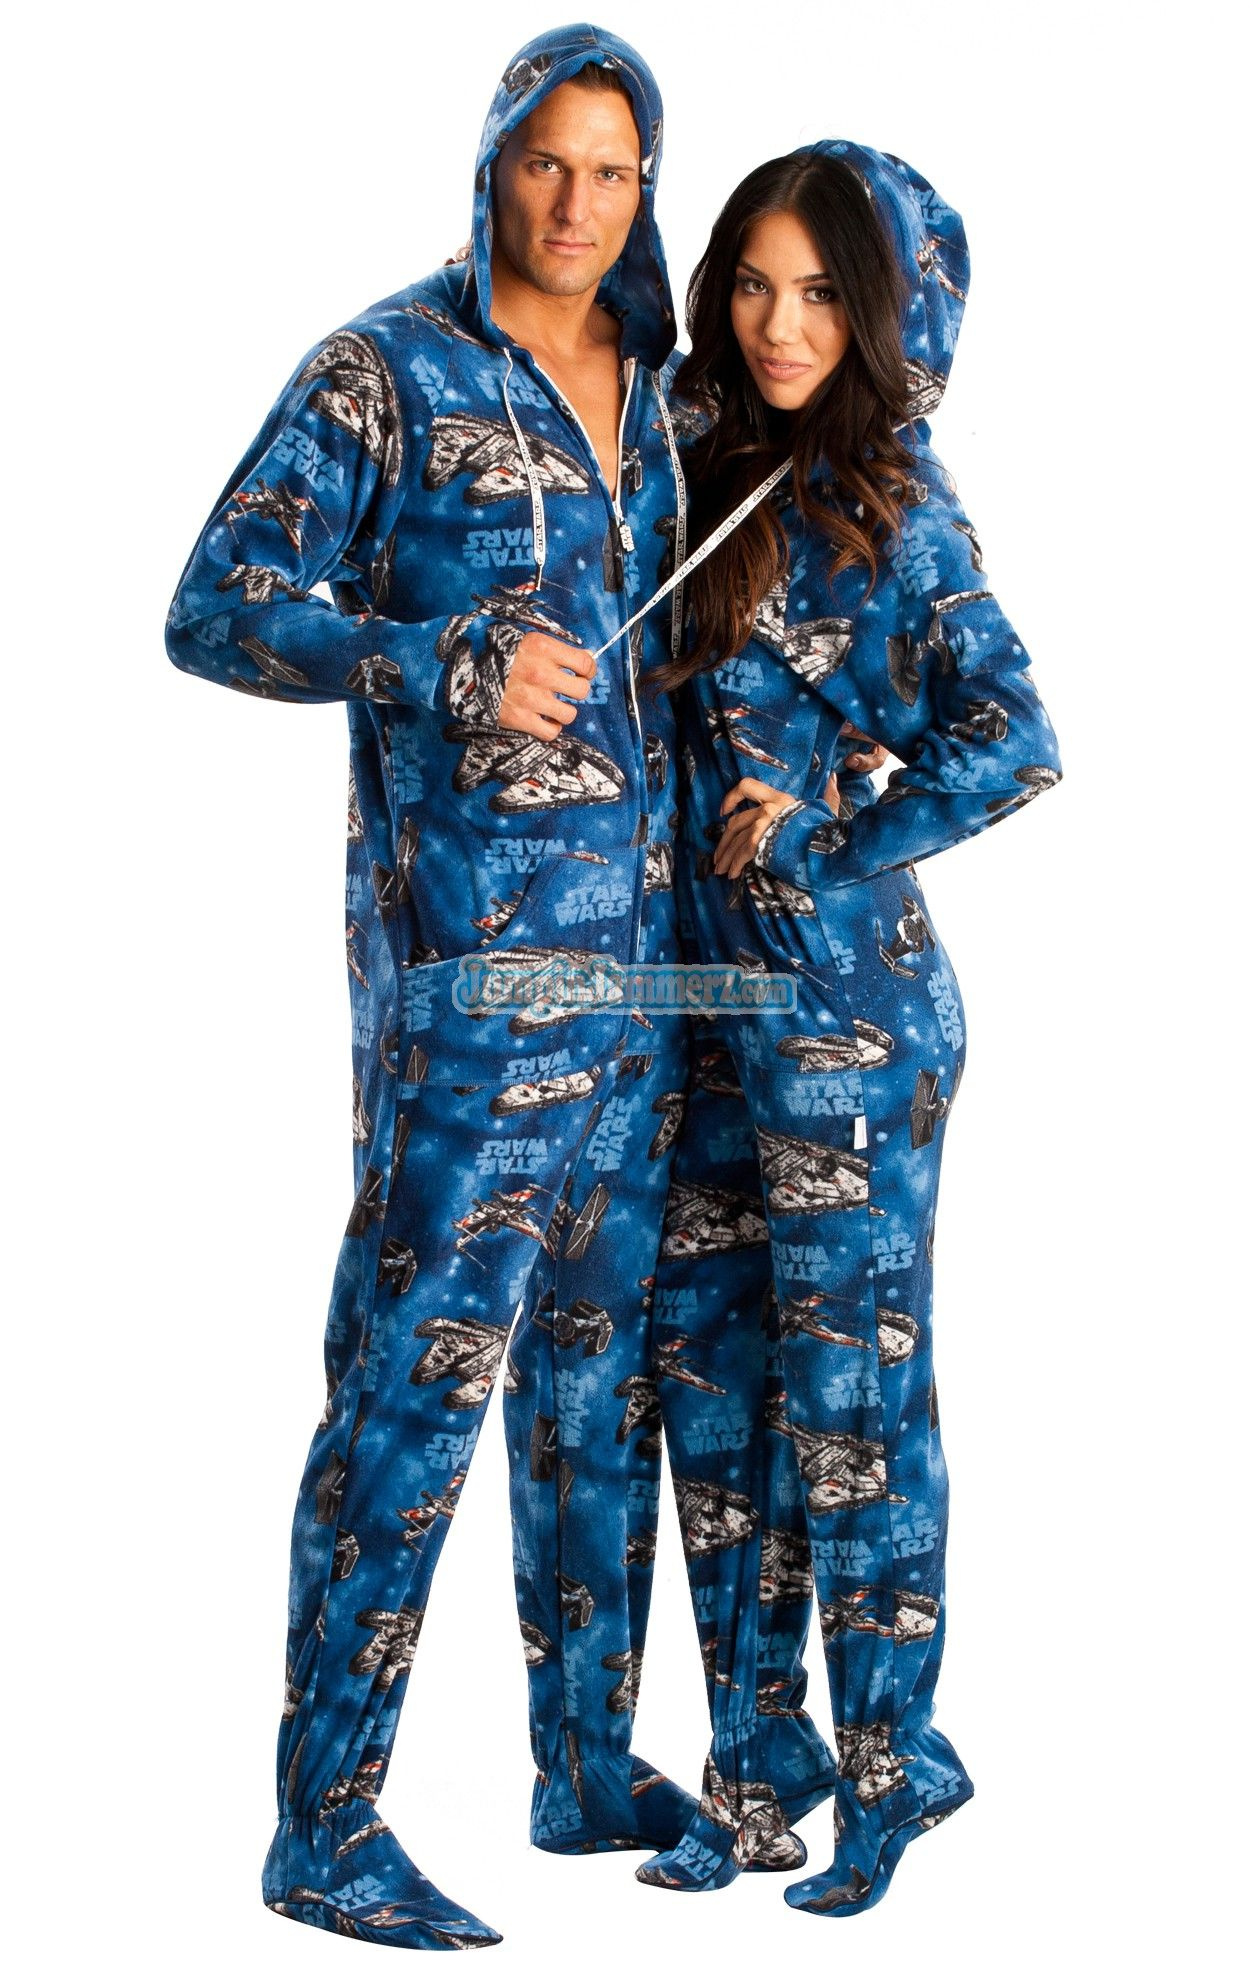 Find great deals on Star Wars Sleepwear at Kohl's today! Sponsored Links Outside companies pay to advertise via these links when specific phrases and words are searched.